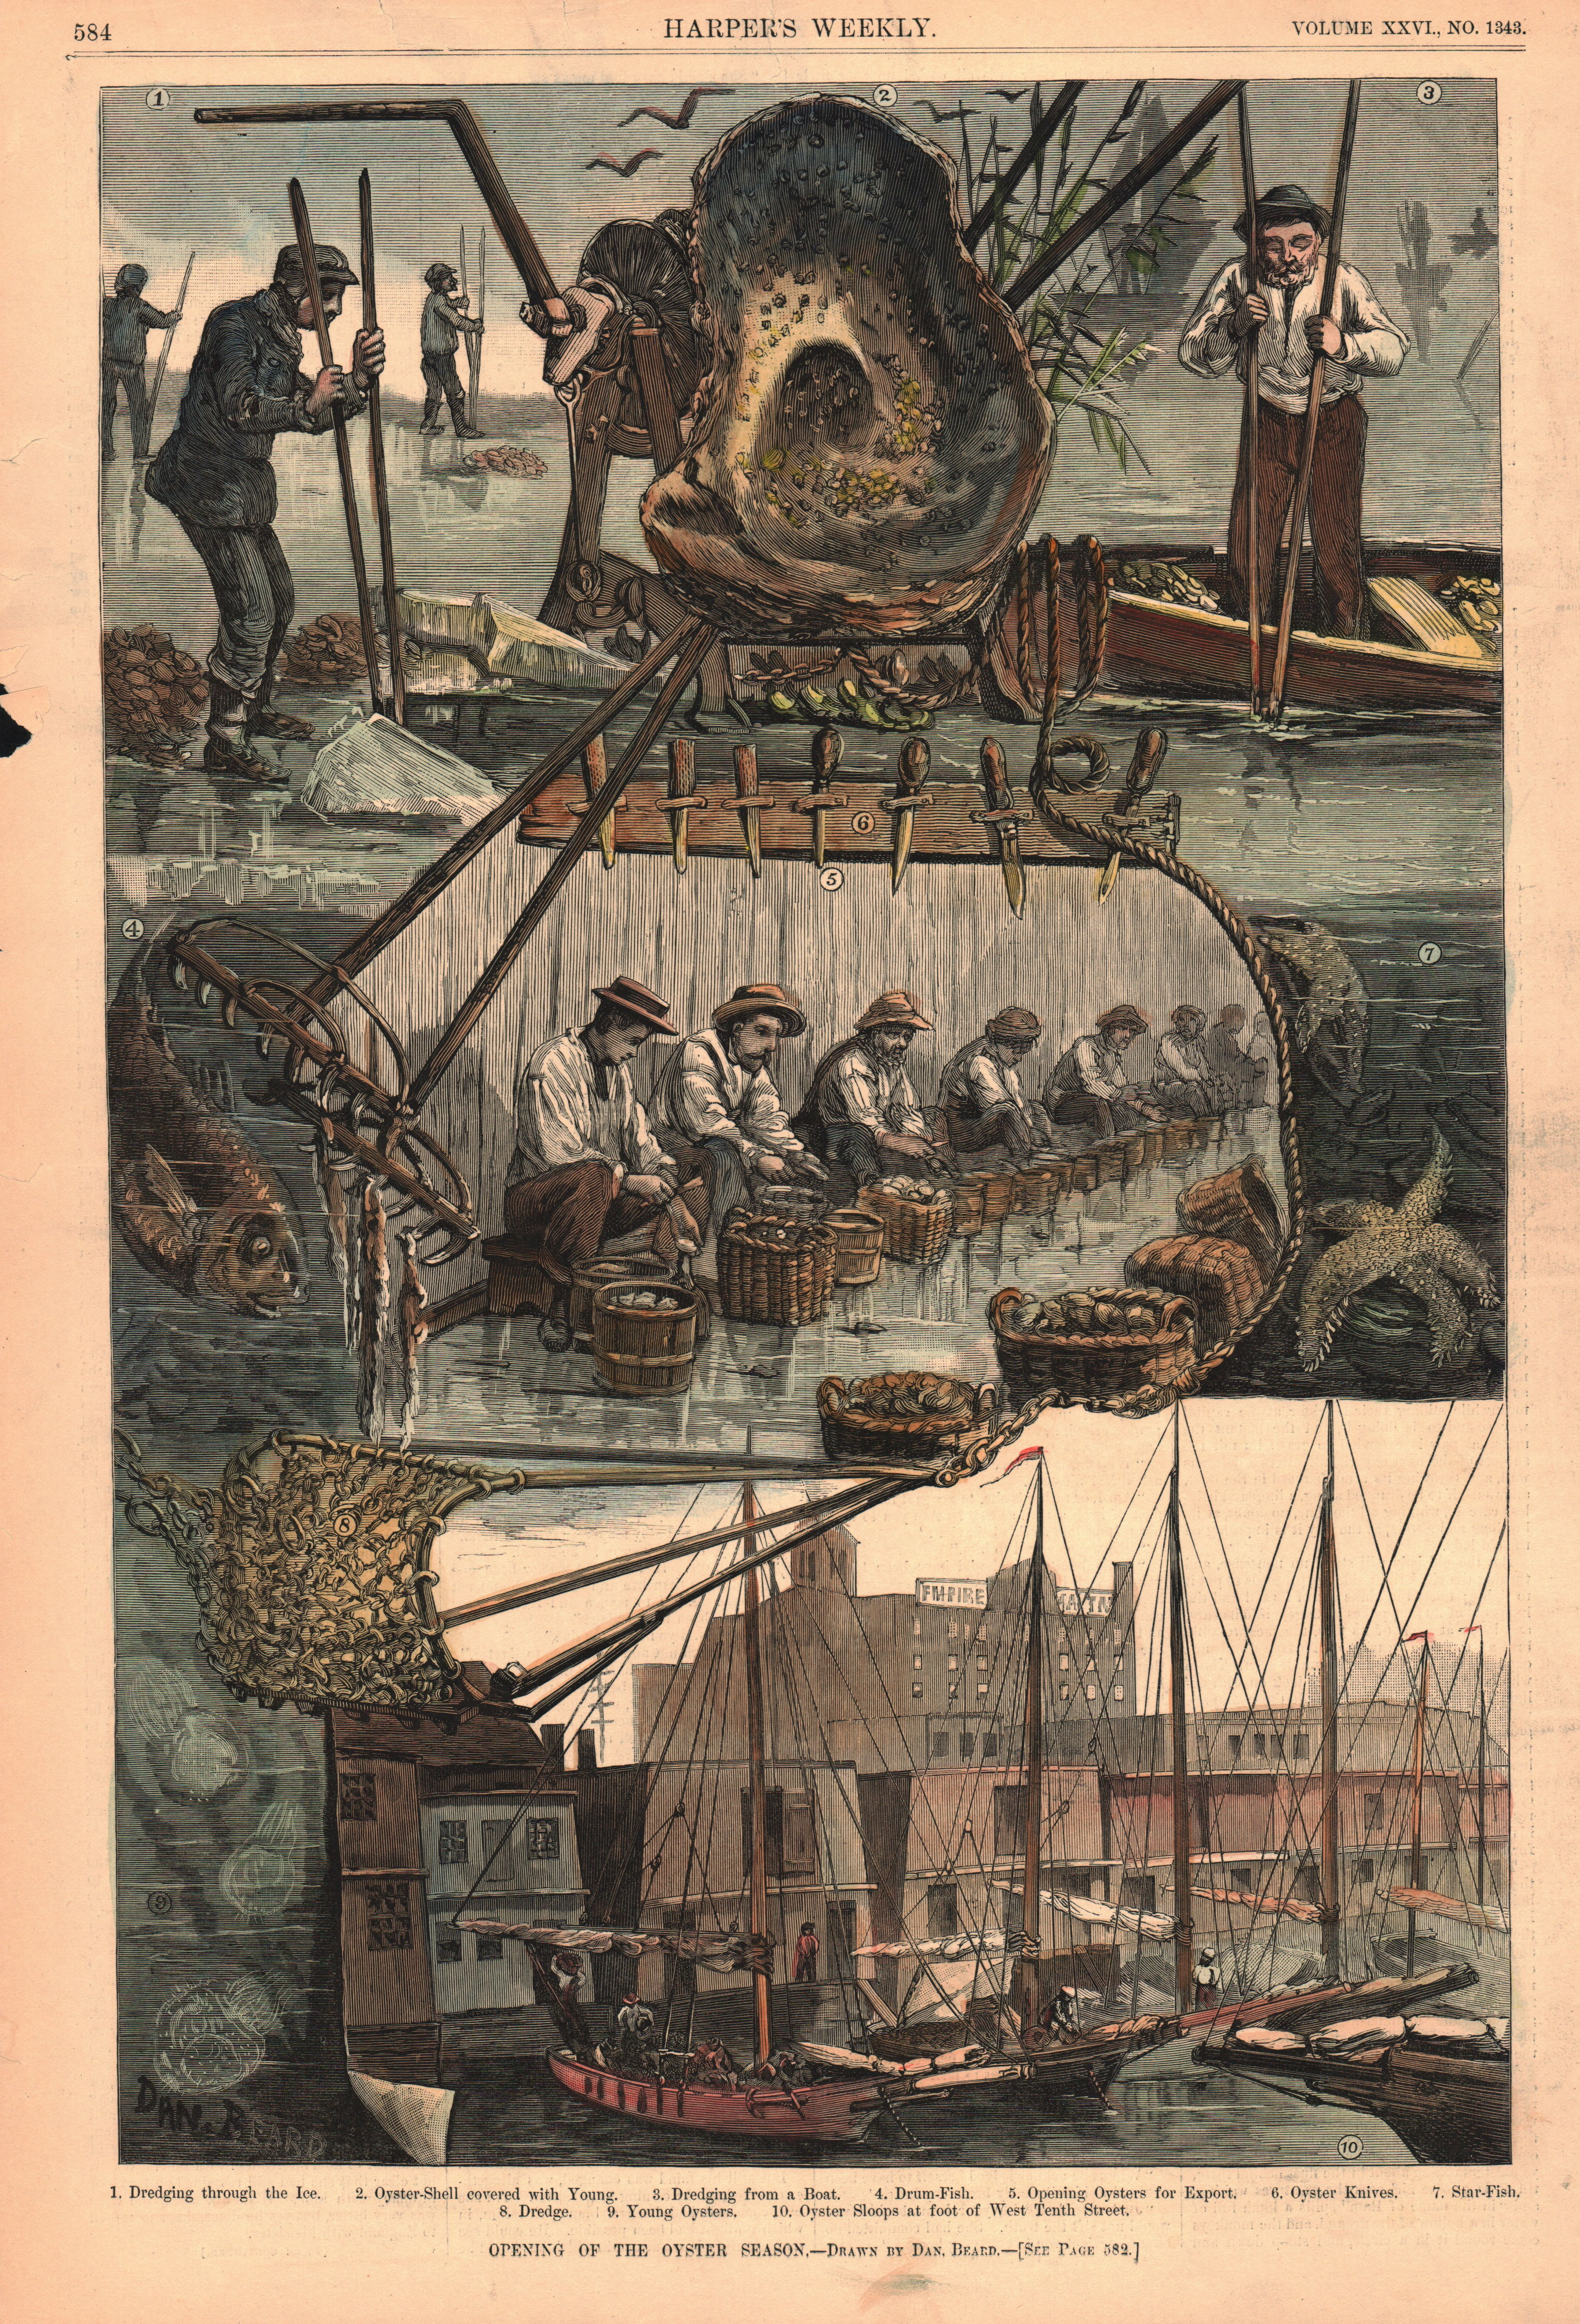 Opening of the oyster season